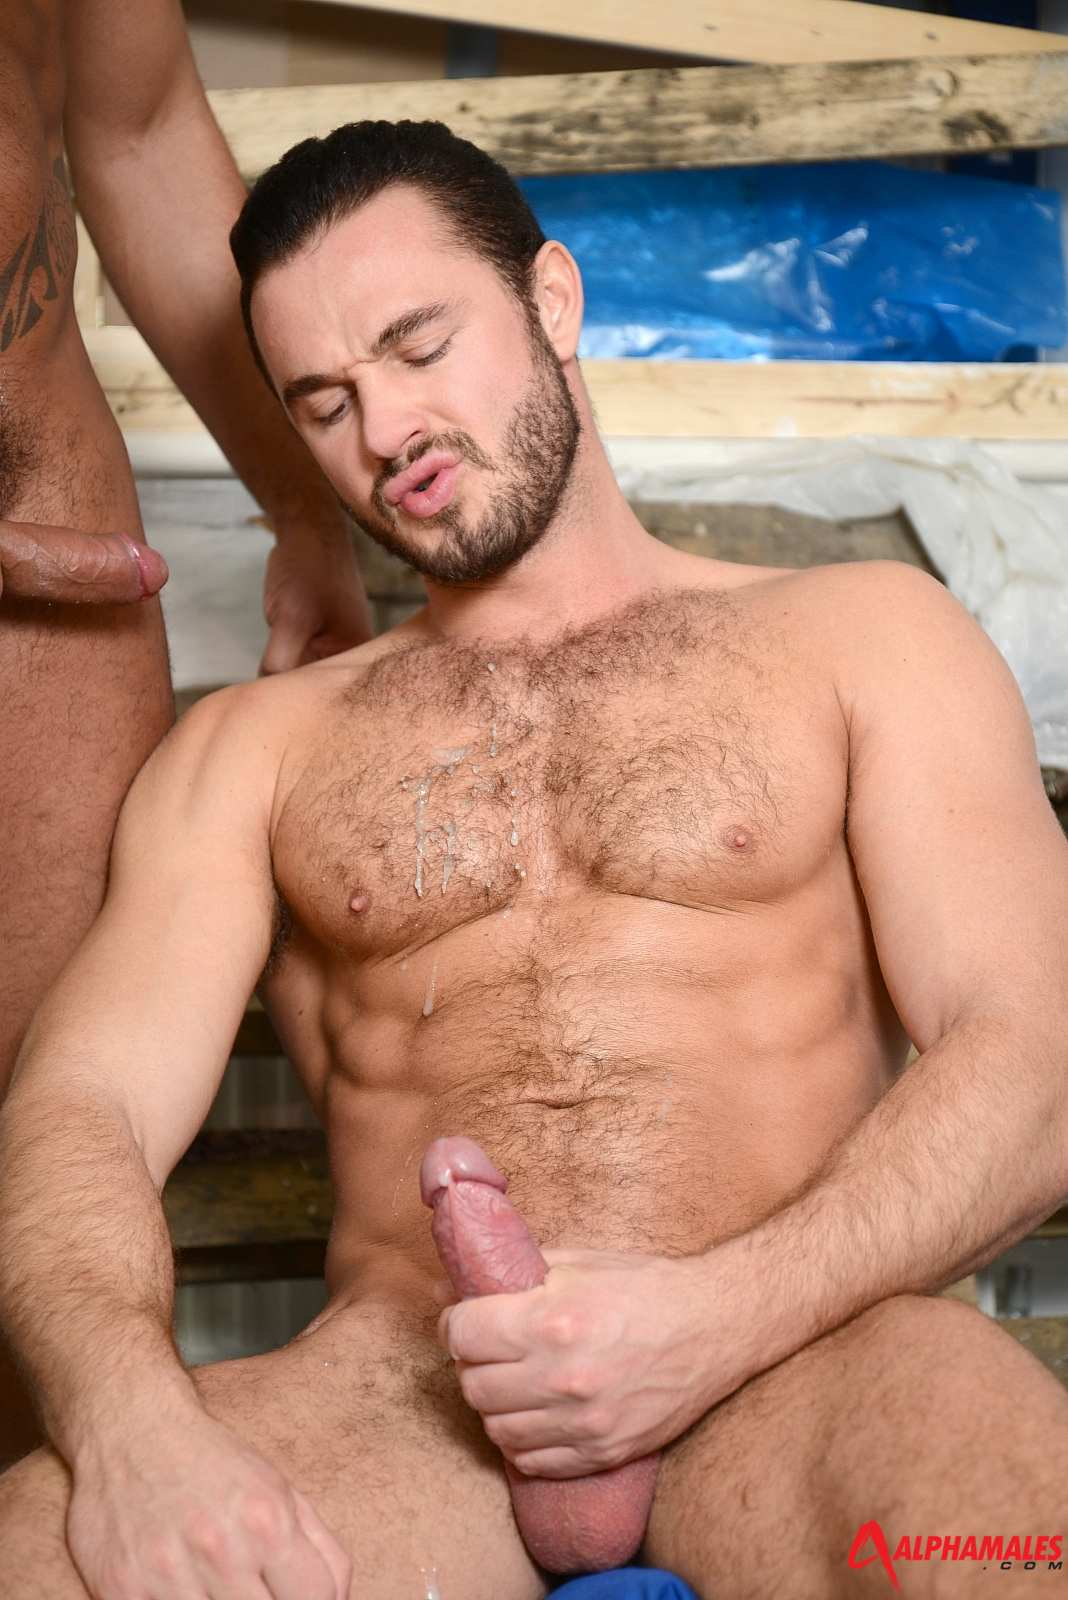 Hairy Gay Video Tumblr